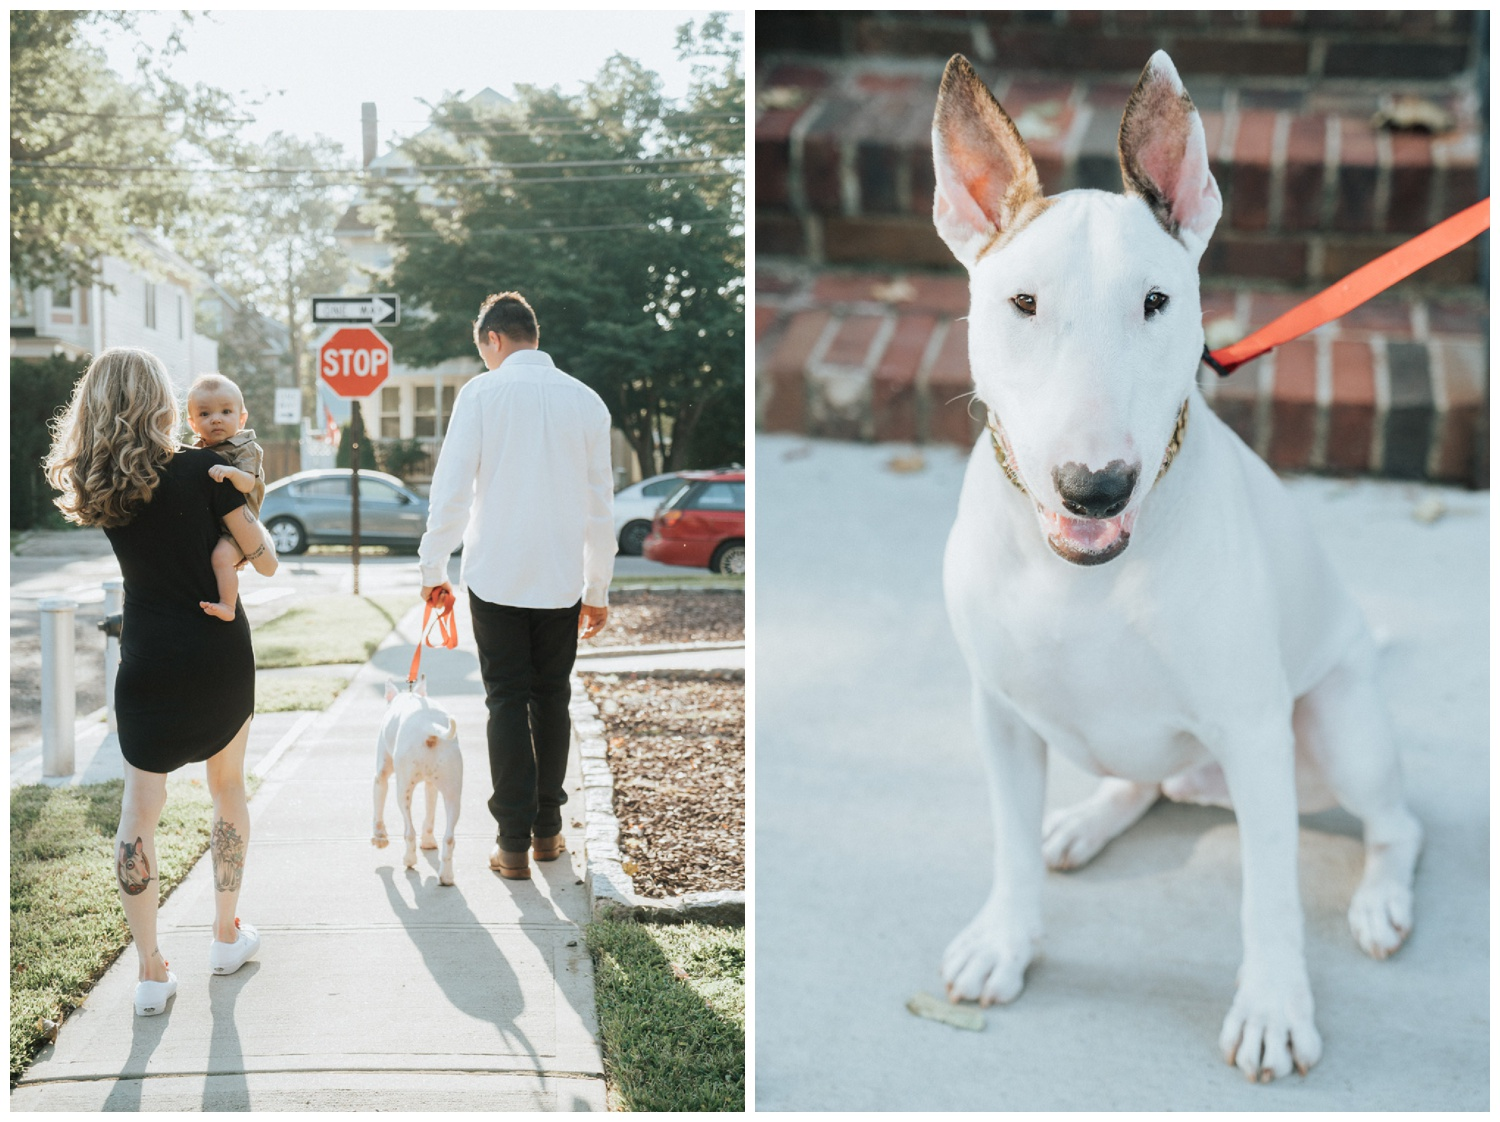 BYOP - Bring Your Own Puppy Engagement Session